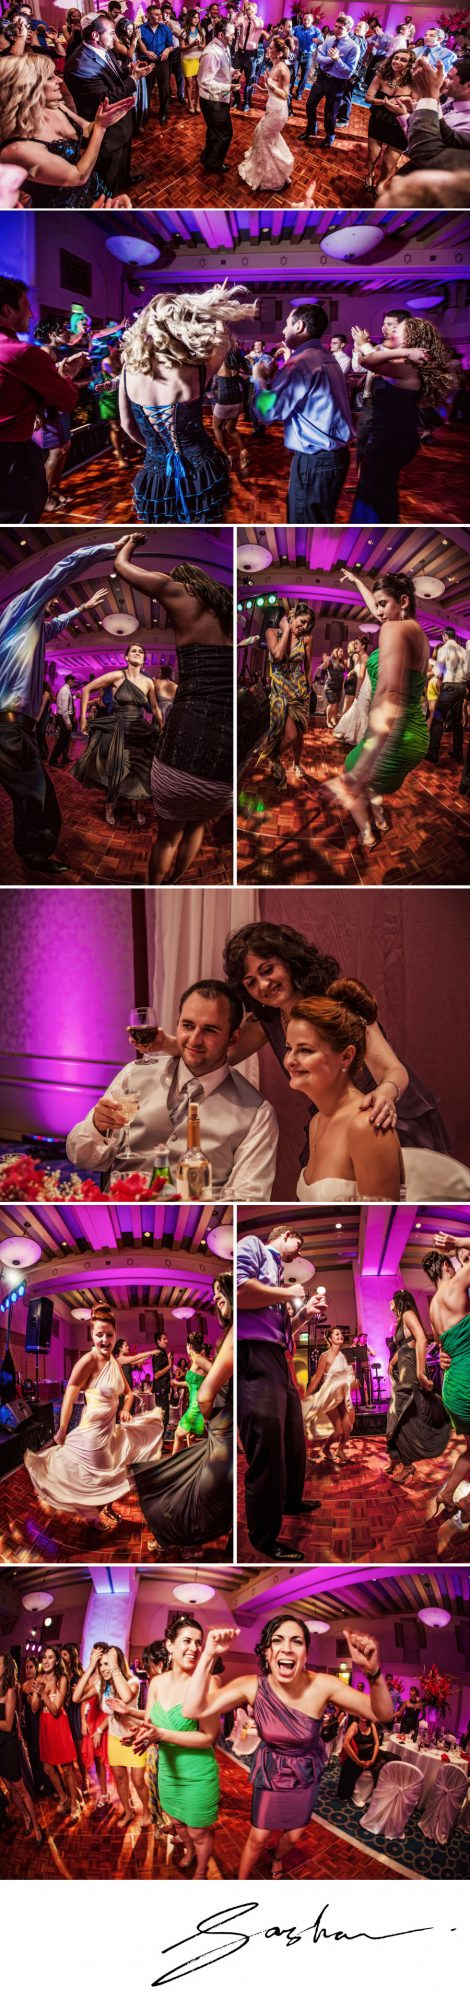 temple emanuel san francisco wedding photography